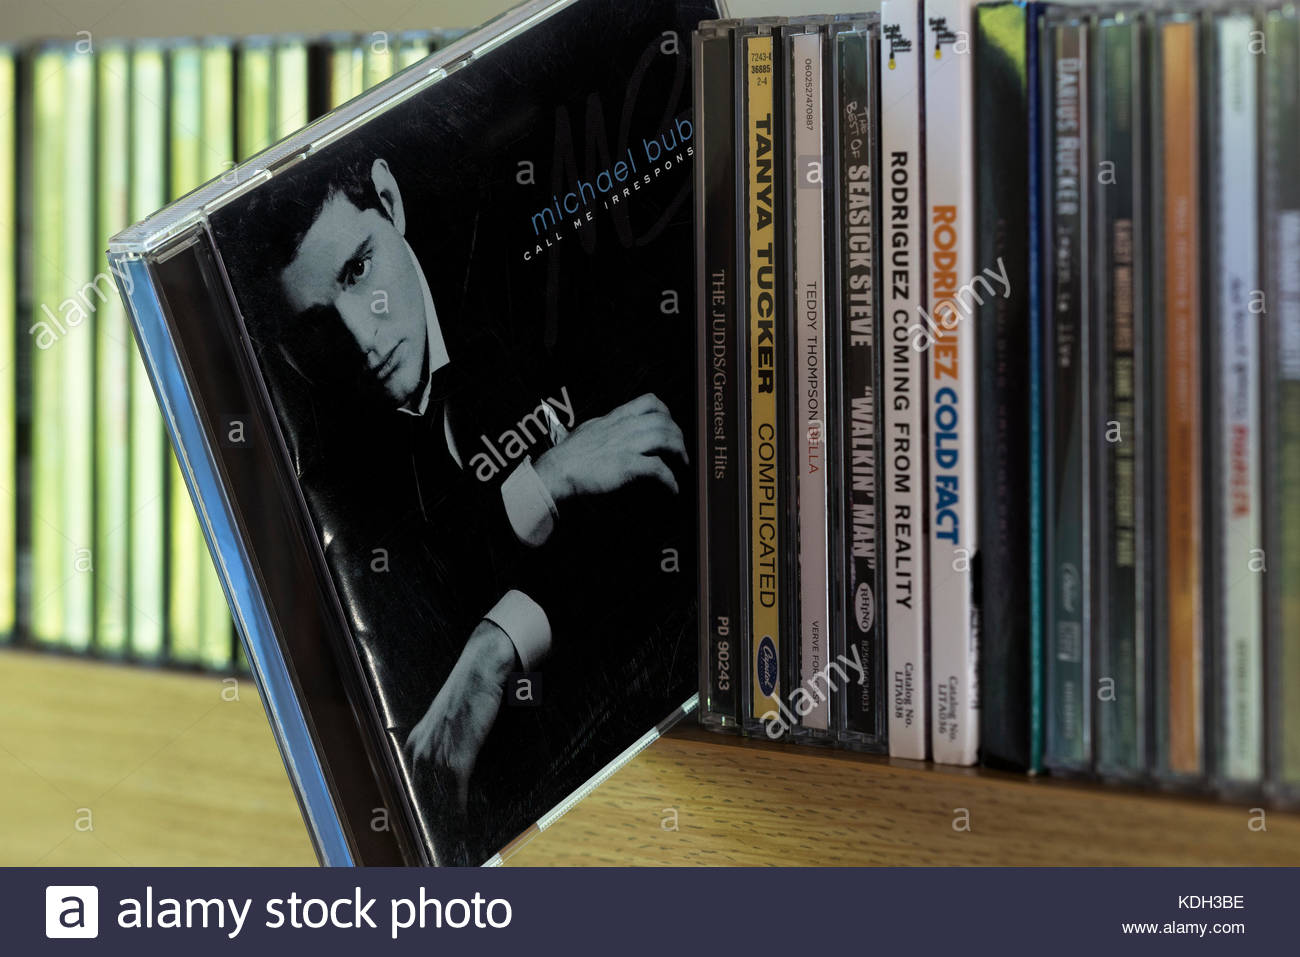 Call Me Irresponsible, Michael Bublé CD pulled out from among other CD's on a shelf, Dorset, England - Stock Image